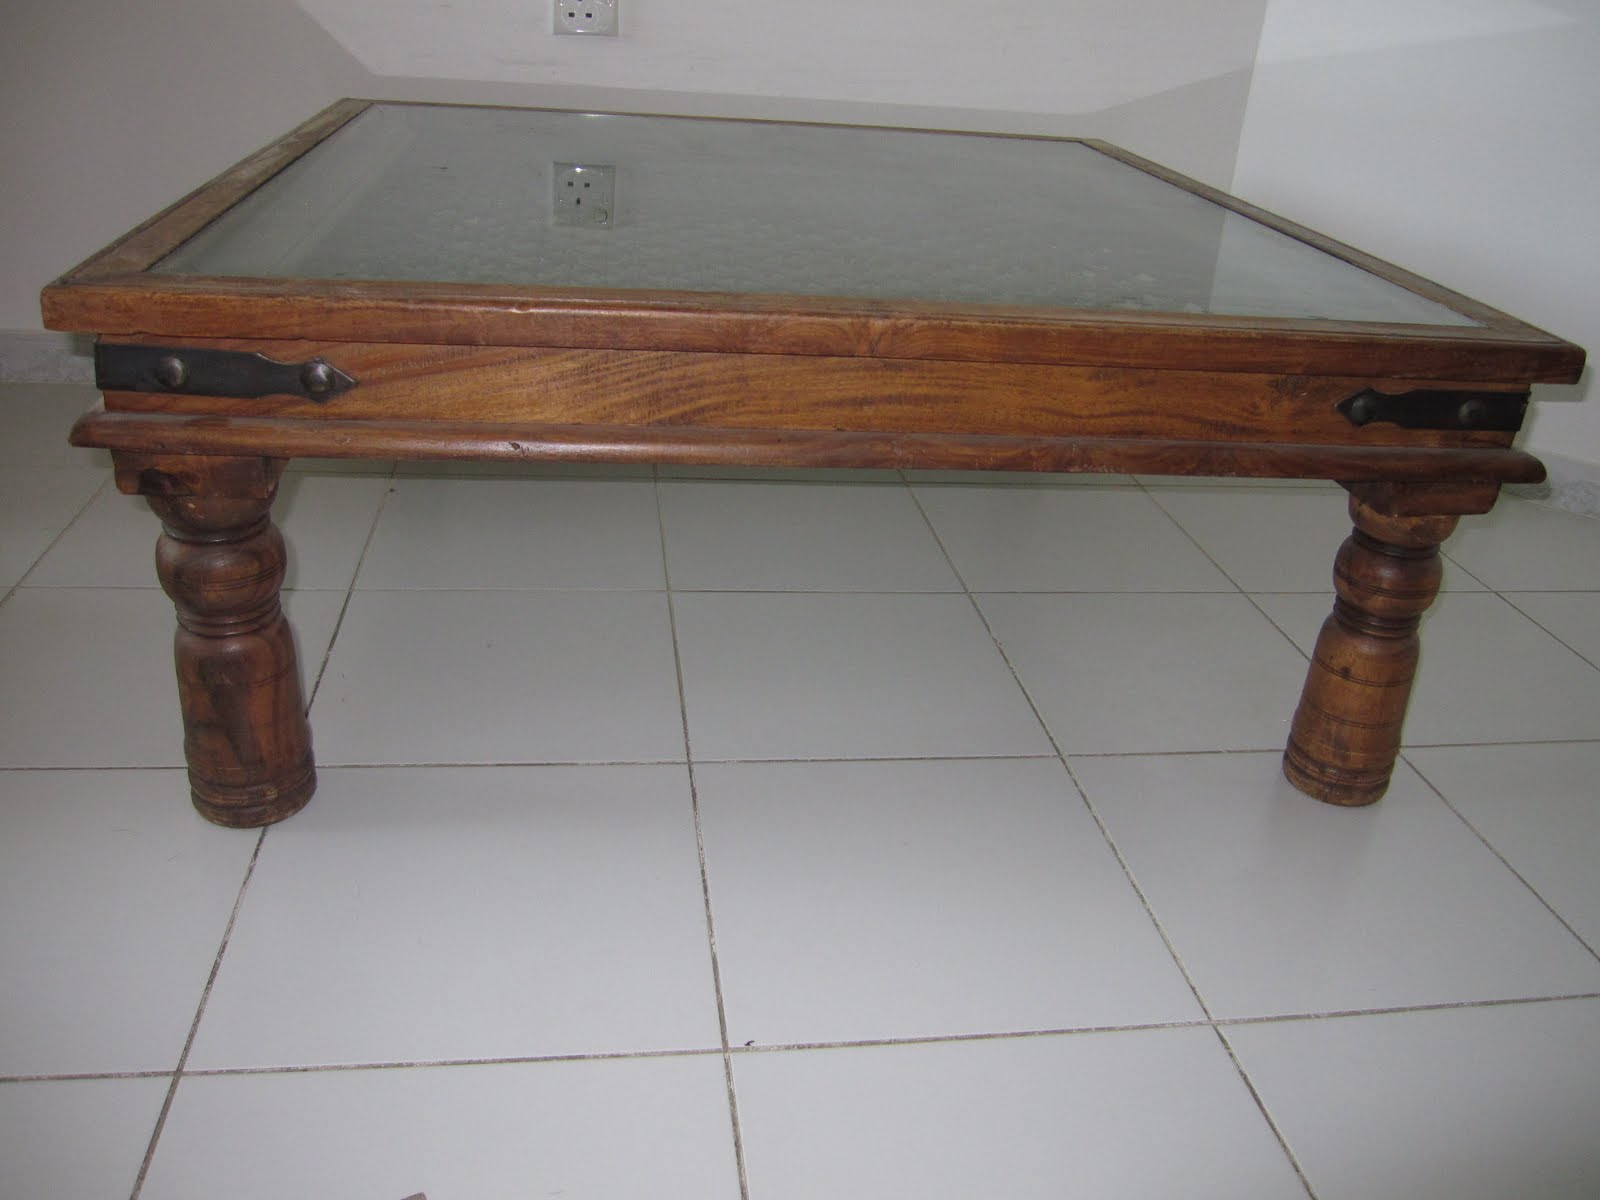 Center Table With Glass : square center table made of glass and wood at 750 aed size is 1 m by 1 ...